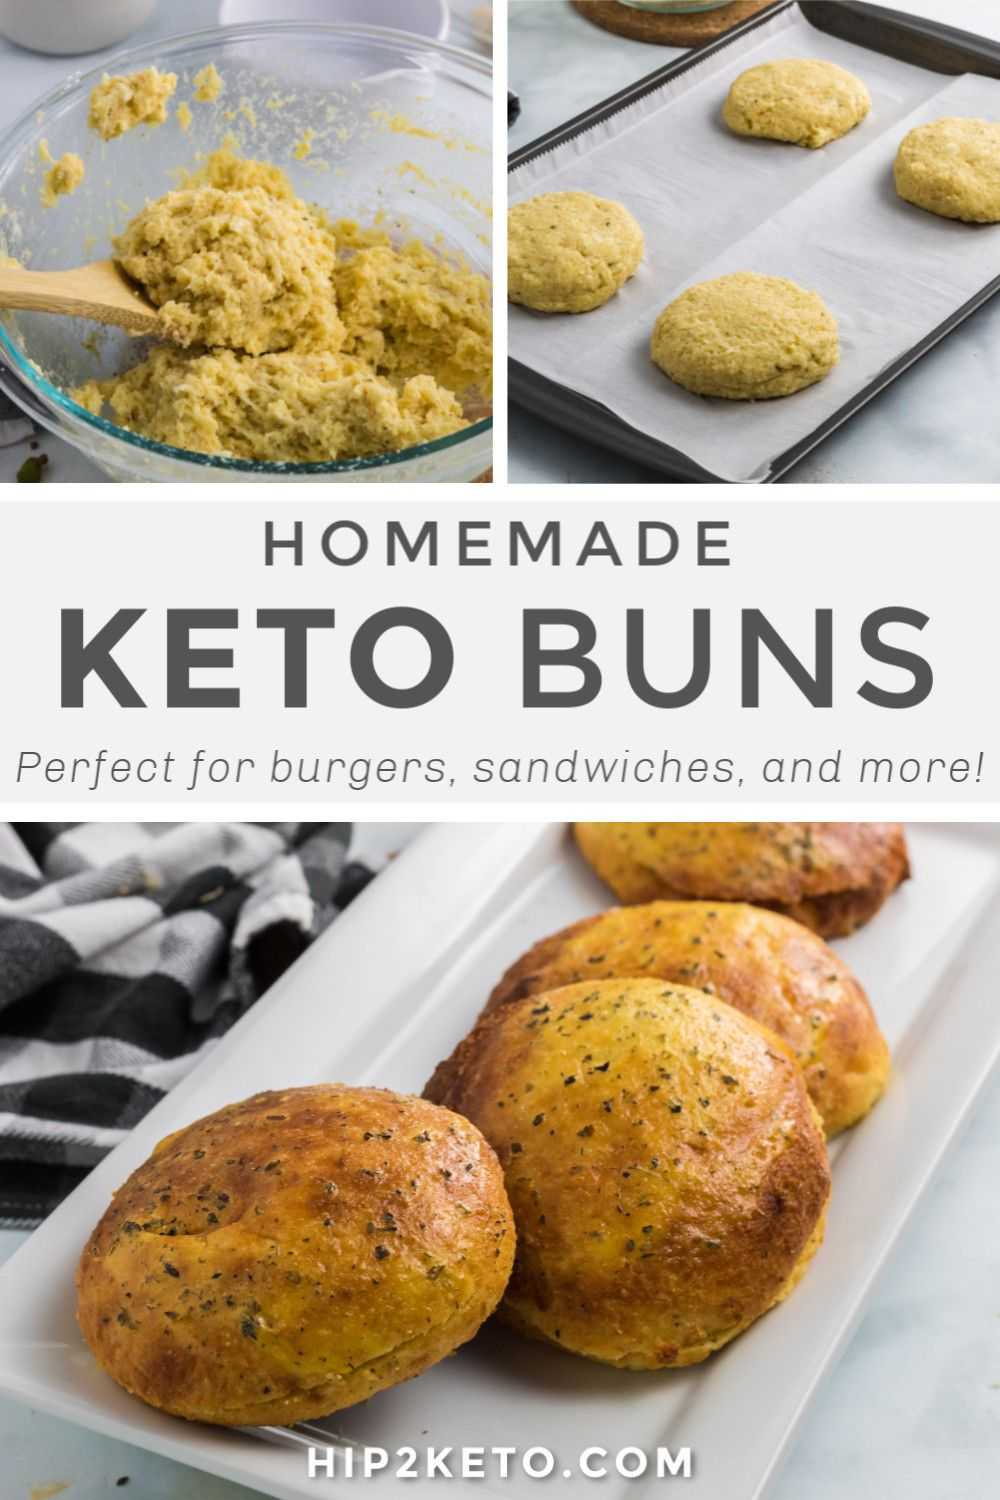 The Best Keto Buns - Crusty Outside and Soft Interior!